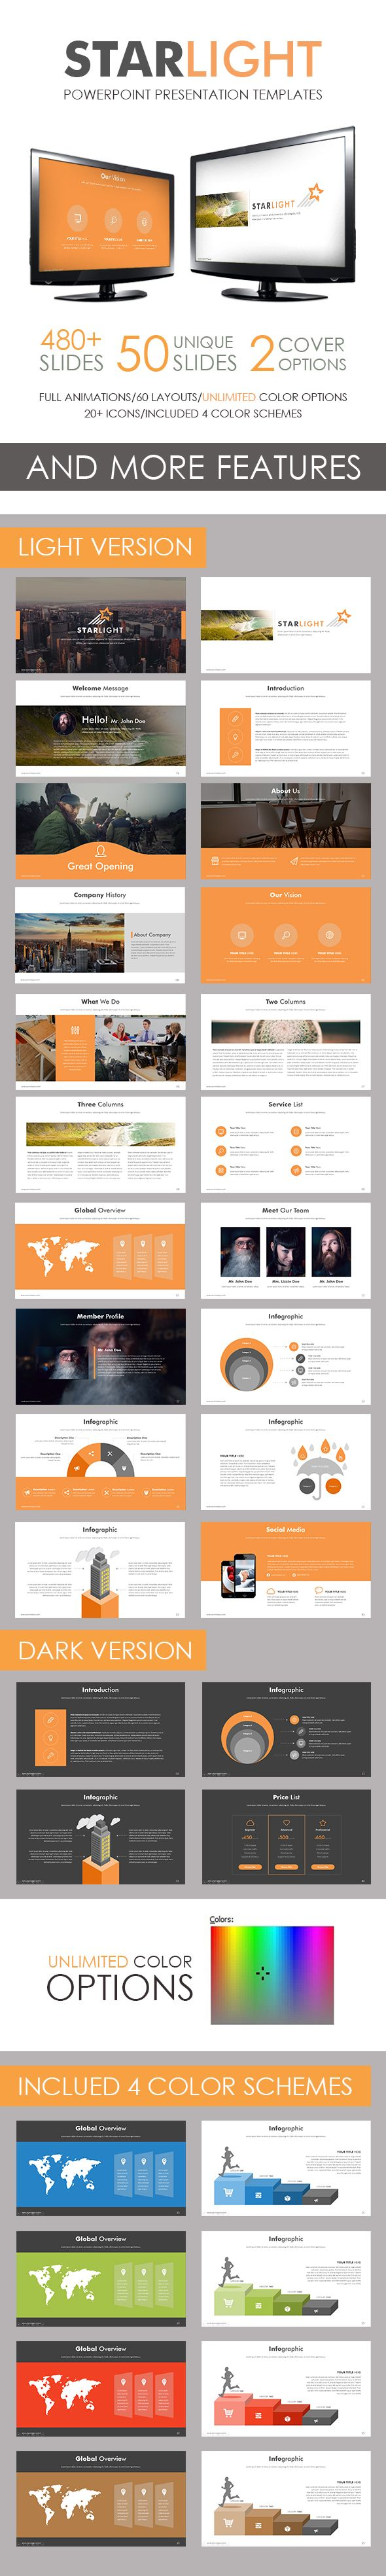 Starlight PowerPoint Presntation Template. Download here: http://graphicriver.net/item/starlight-powerpoint-template/15530605?ref=ksioks